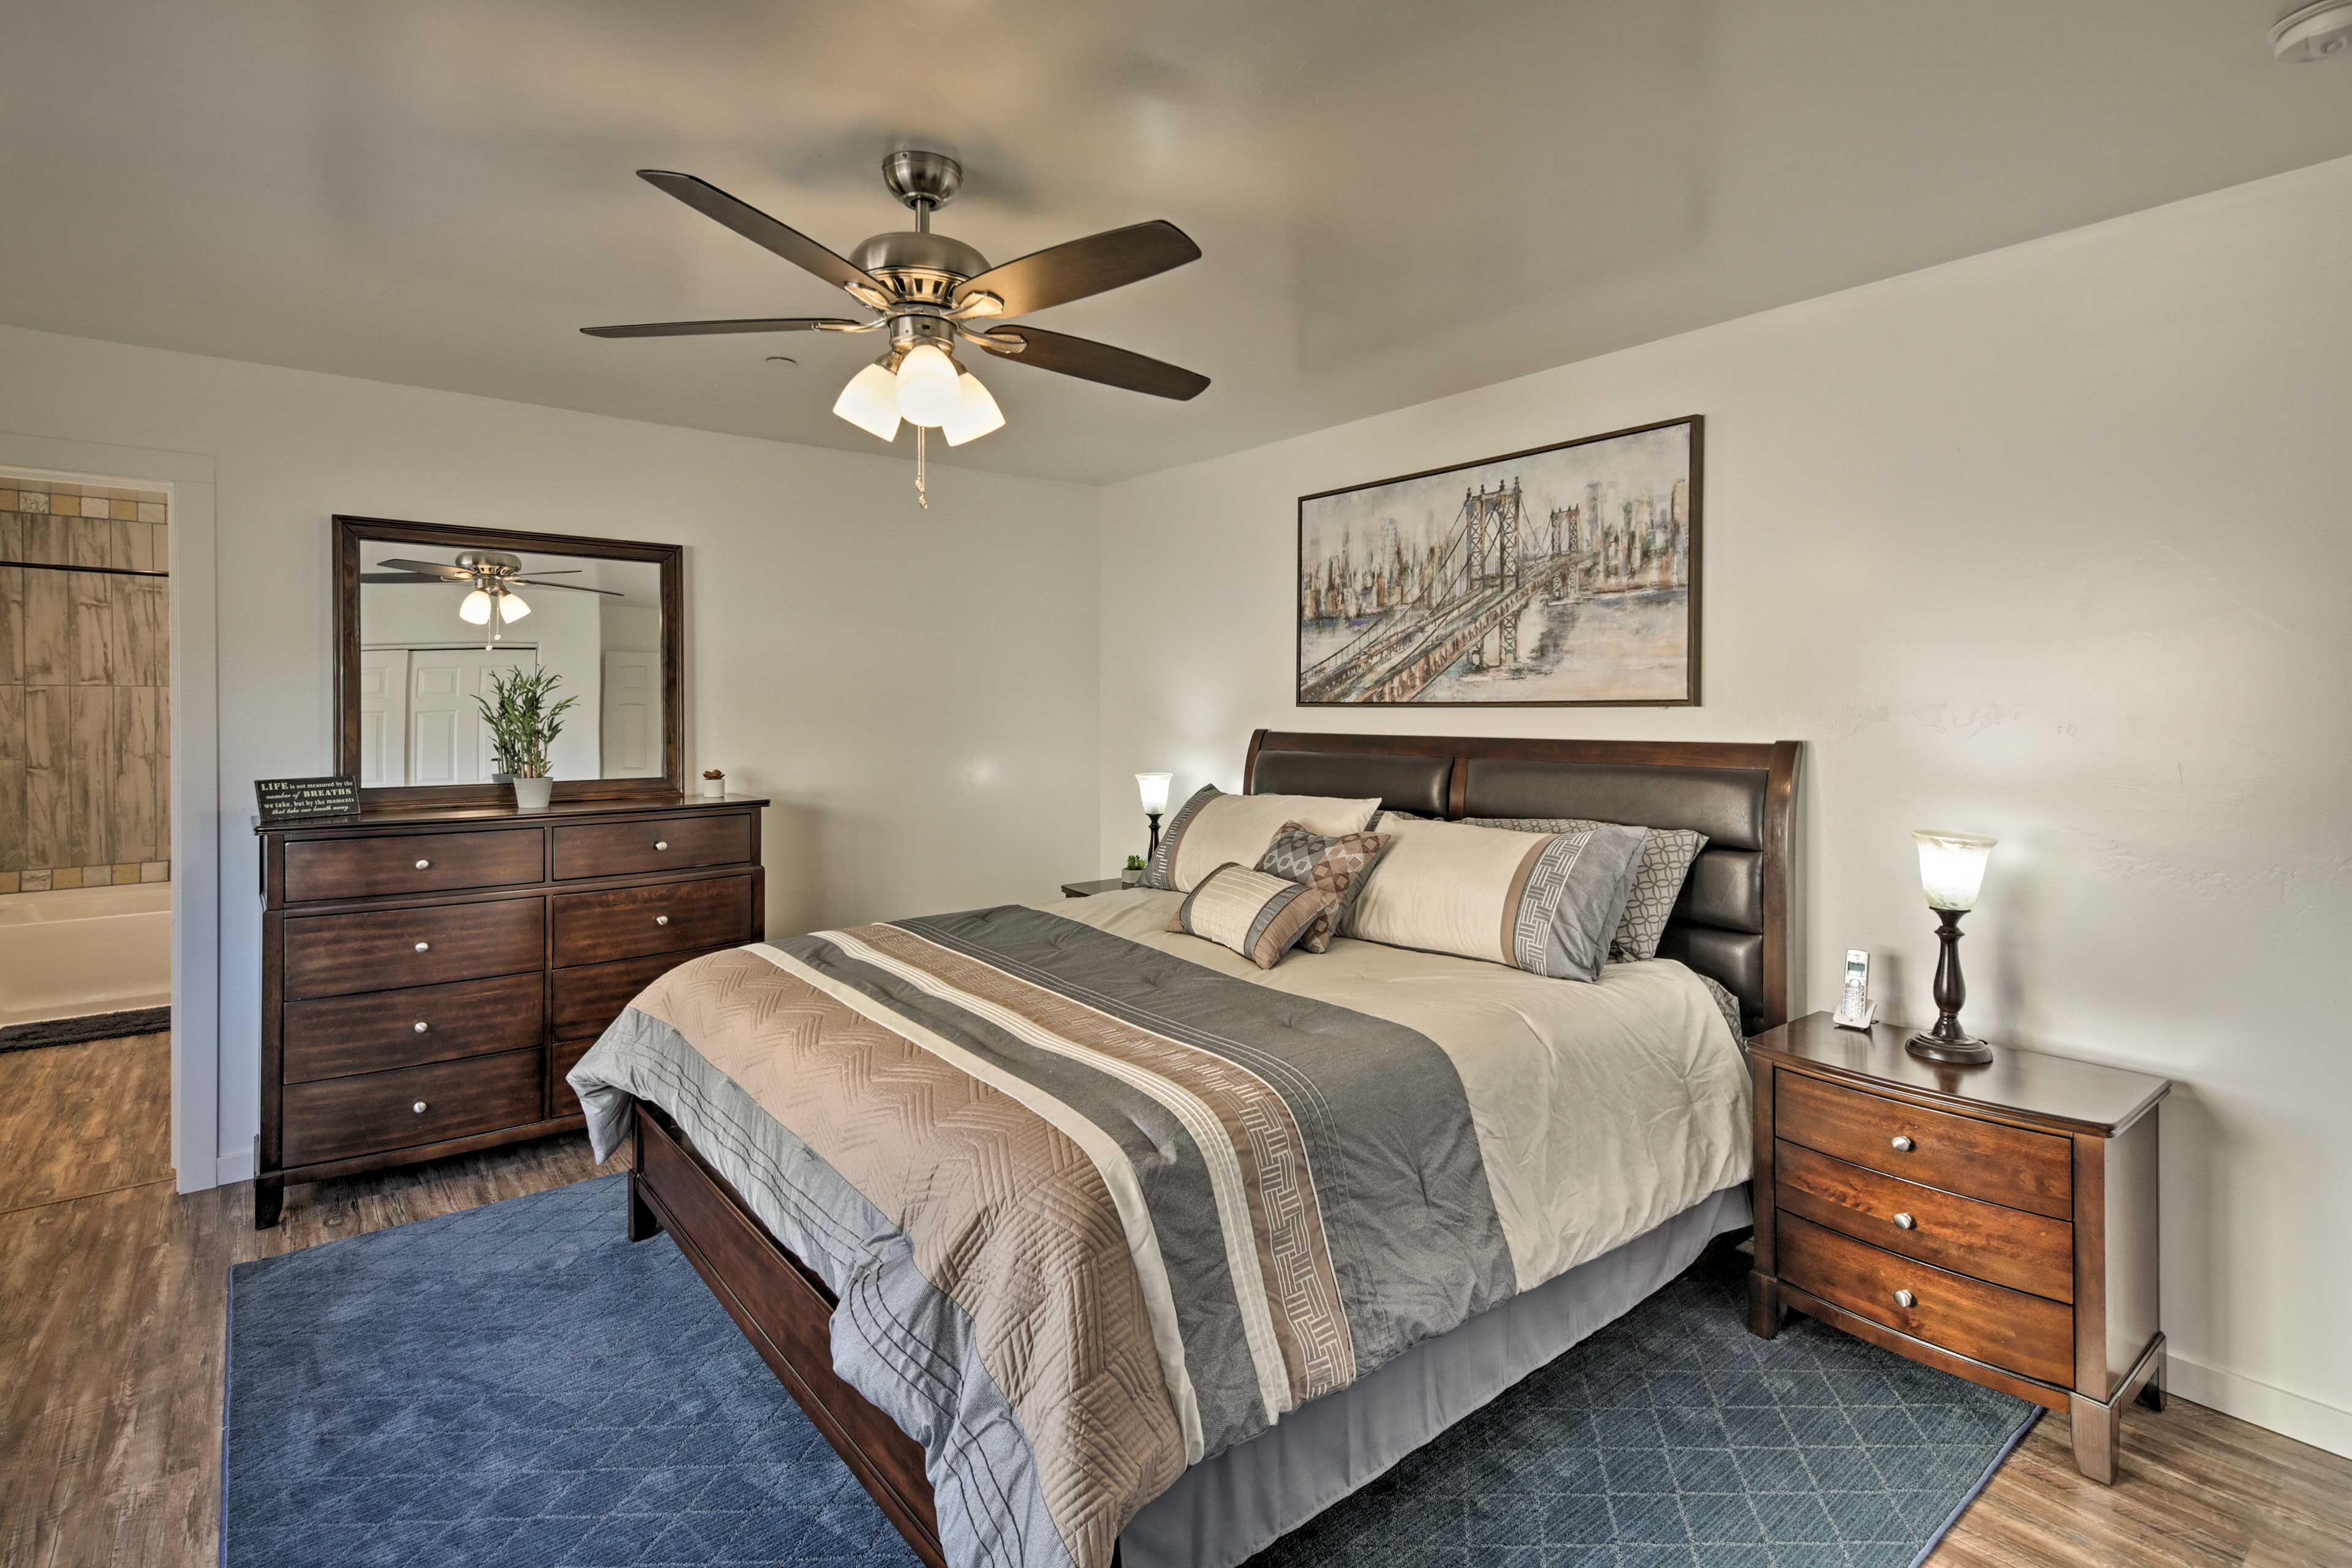 Dream easily in the first bedroom furnished with a plush California king bed.